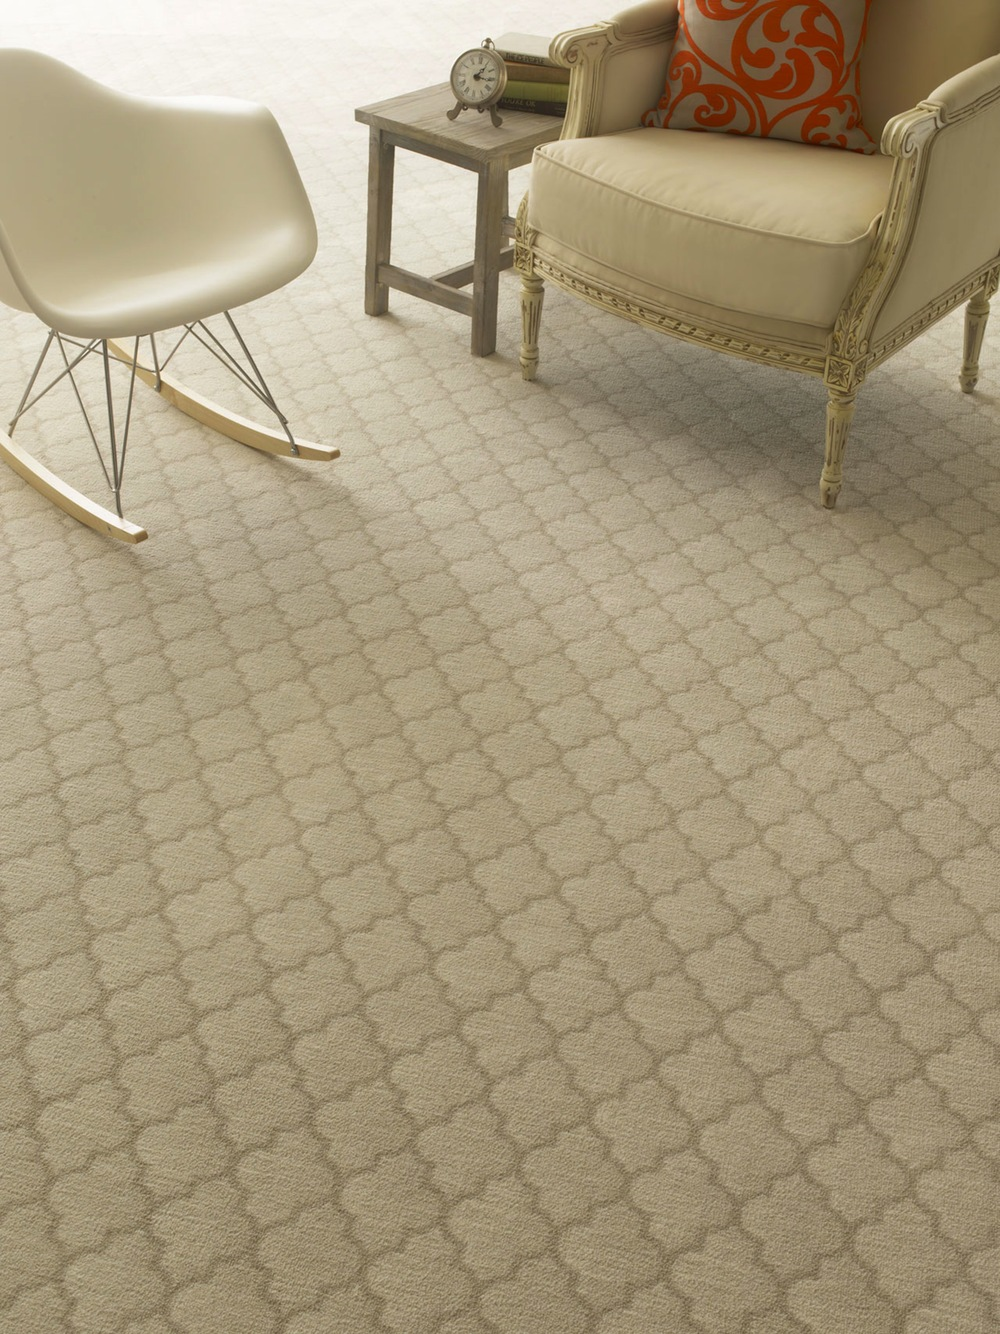 tufted-milliken-carpet-design-in-beige-color-option-for-contemporary-home-accessories-decoration-pattern-milliken-carpet-milliken-carpet-prices-milliken-carpets-milliken-carpet-distributors.jpg